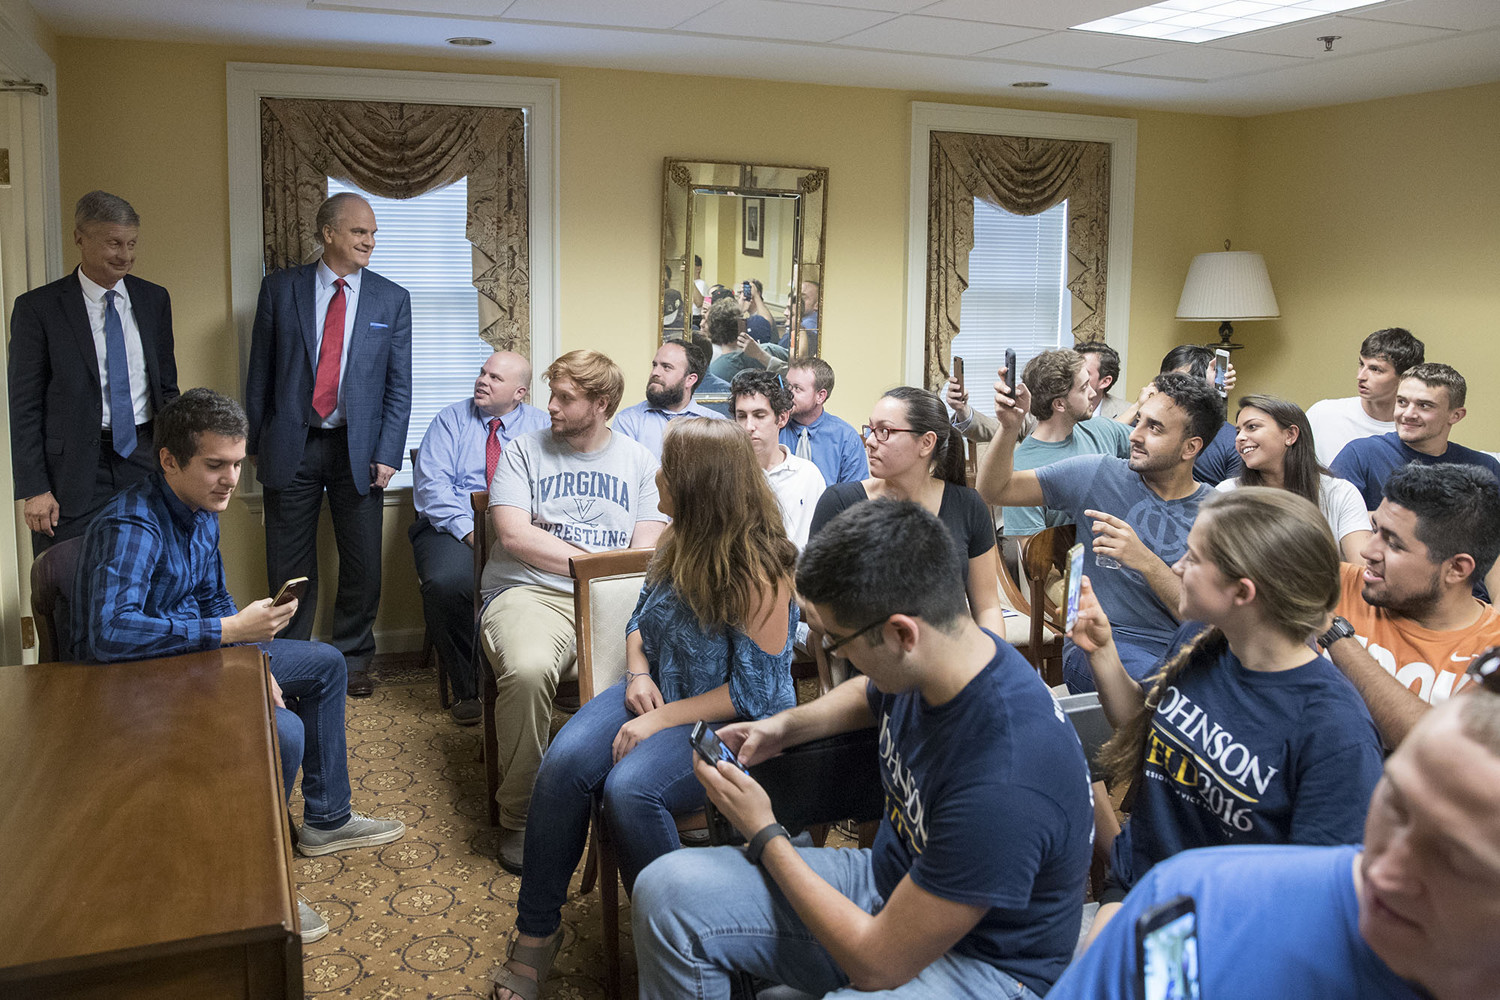 Presidential candidate Gary Johnson took time to greet students before appearing on Monday's edition of American Forum.